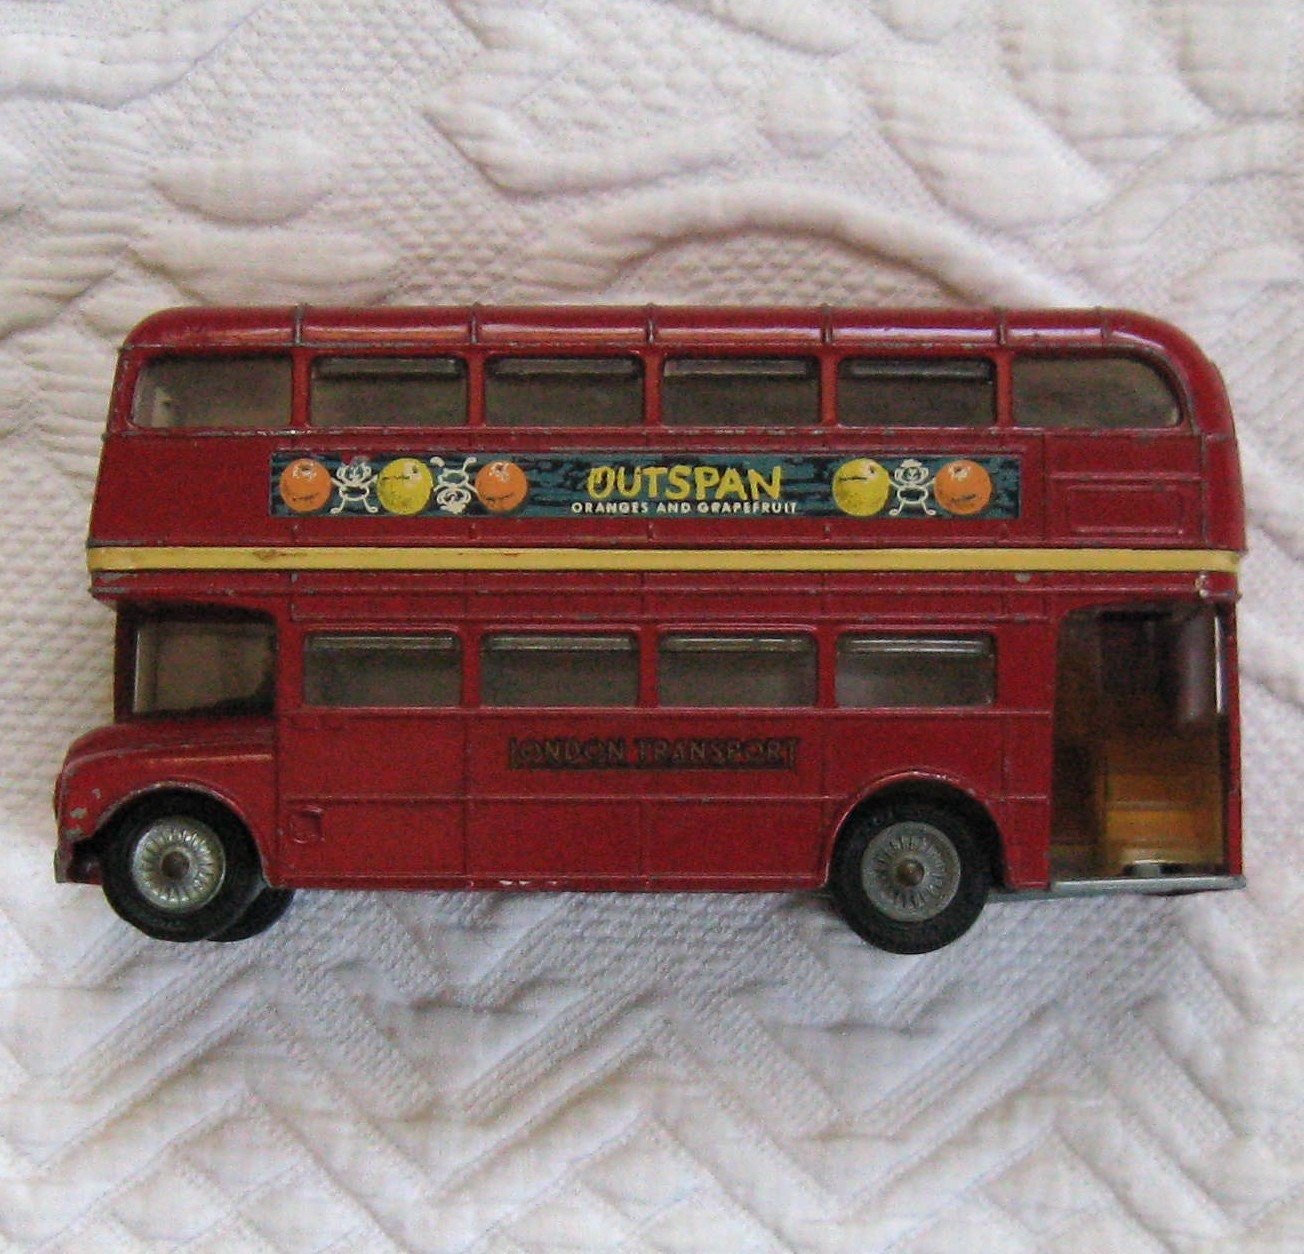 Vintage London Double Decker Bus Toy By Corgi